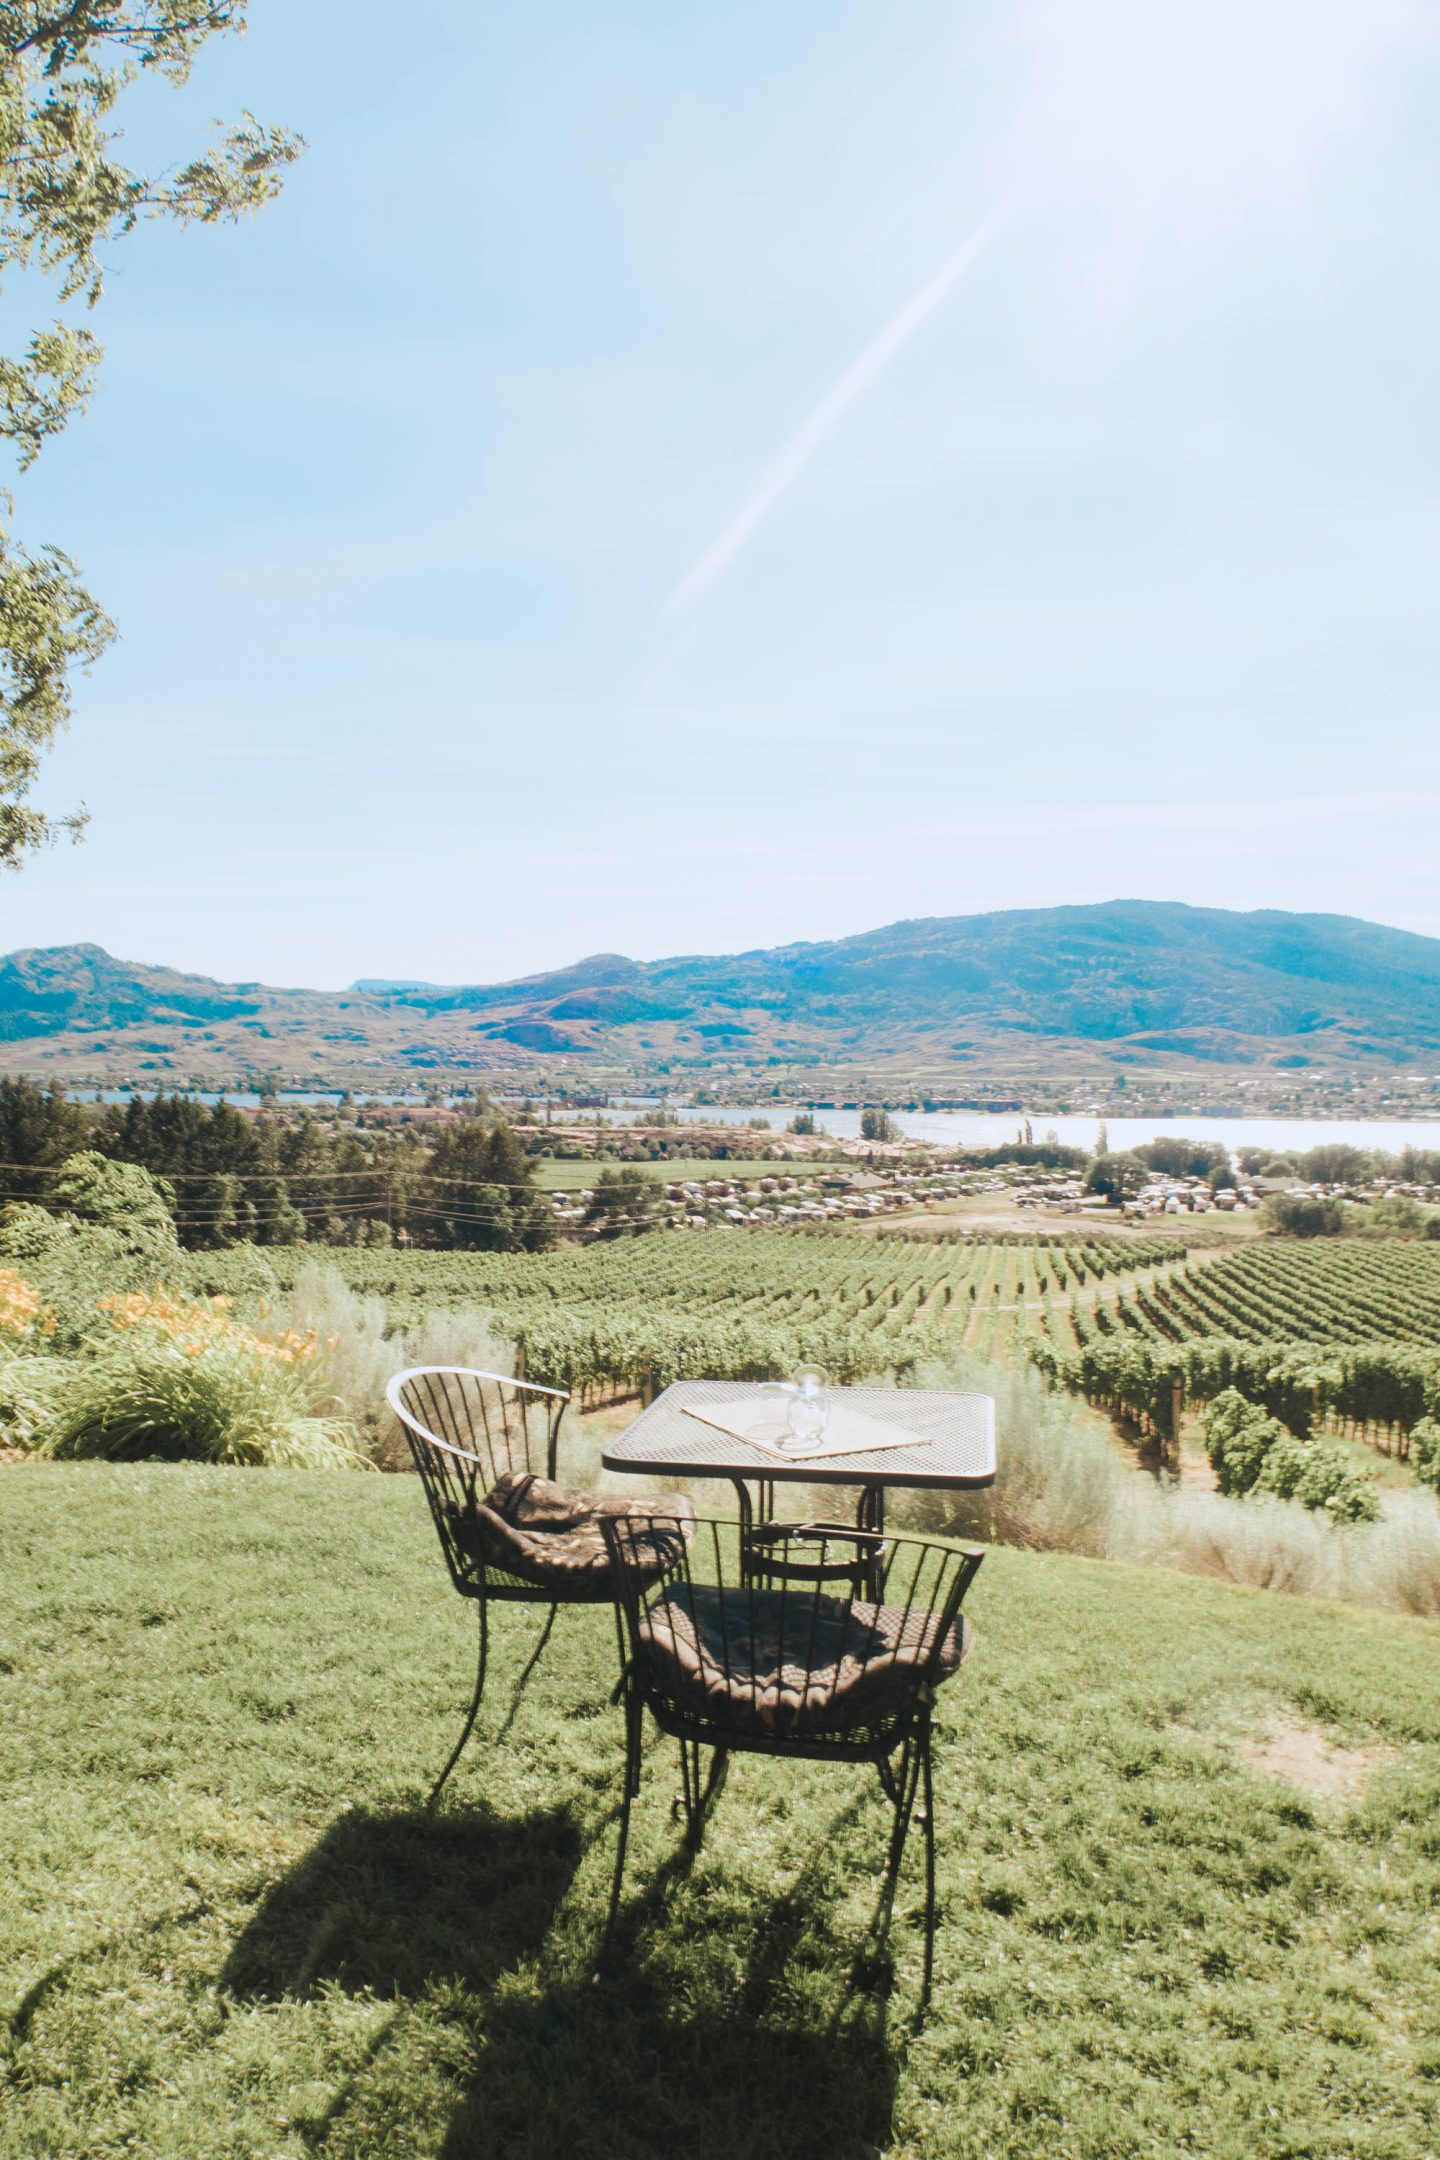 The incredible outdoor view at NK'MIP Cellars and Sunset Lounge